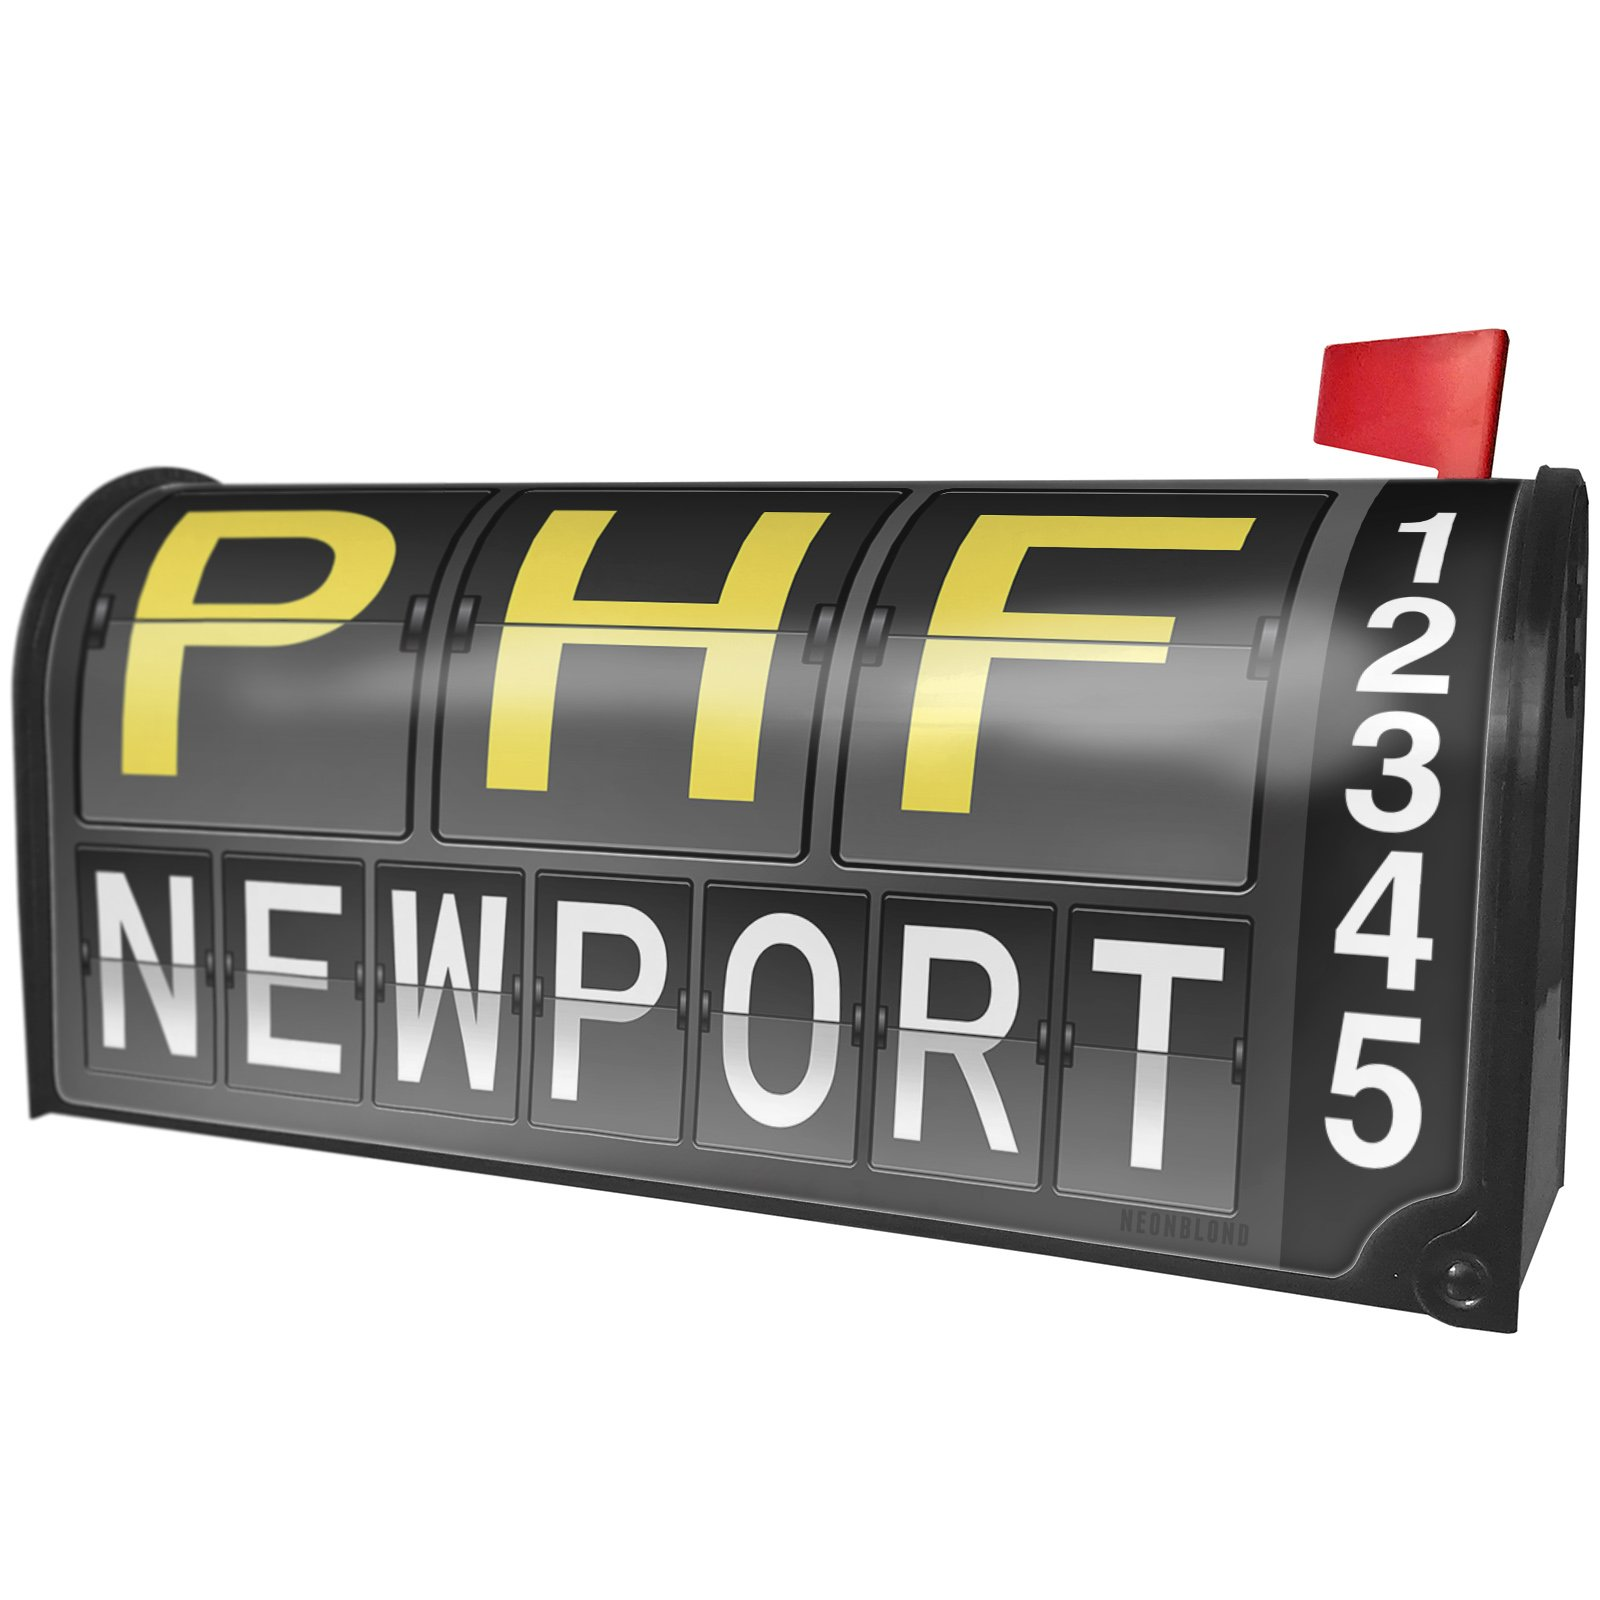 NEONBLOND PHF Airport Code for Newport Magnetic Mailbox Cover Custom Numbers